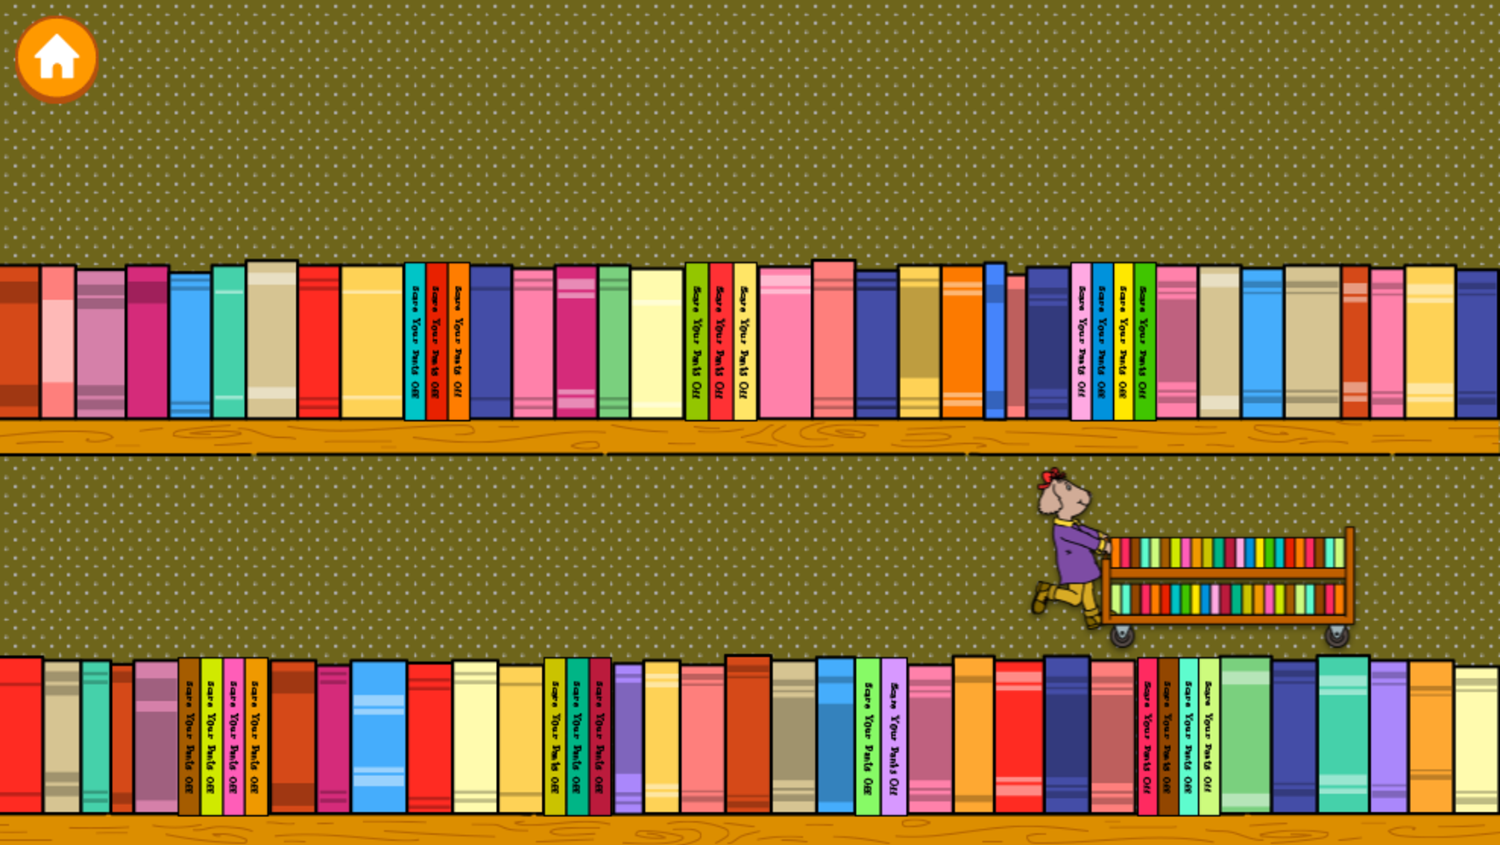 Arthur's Top 20 Game Scare Your Pants Off Books Stage Complete Screenshot.